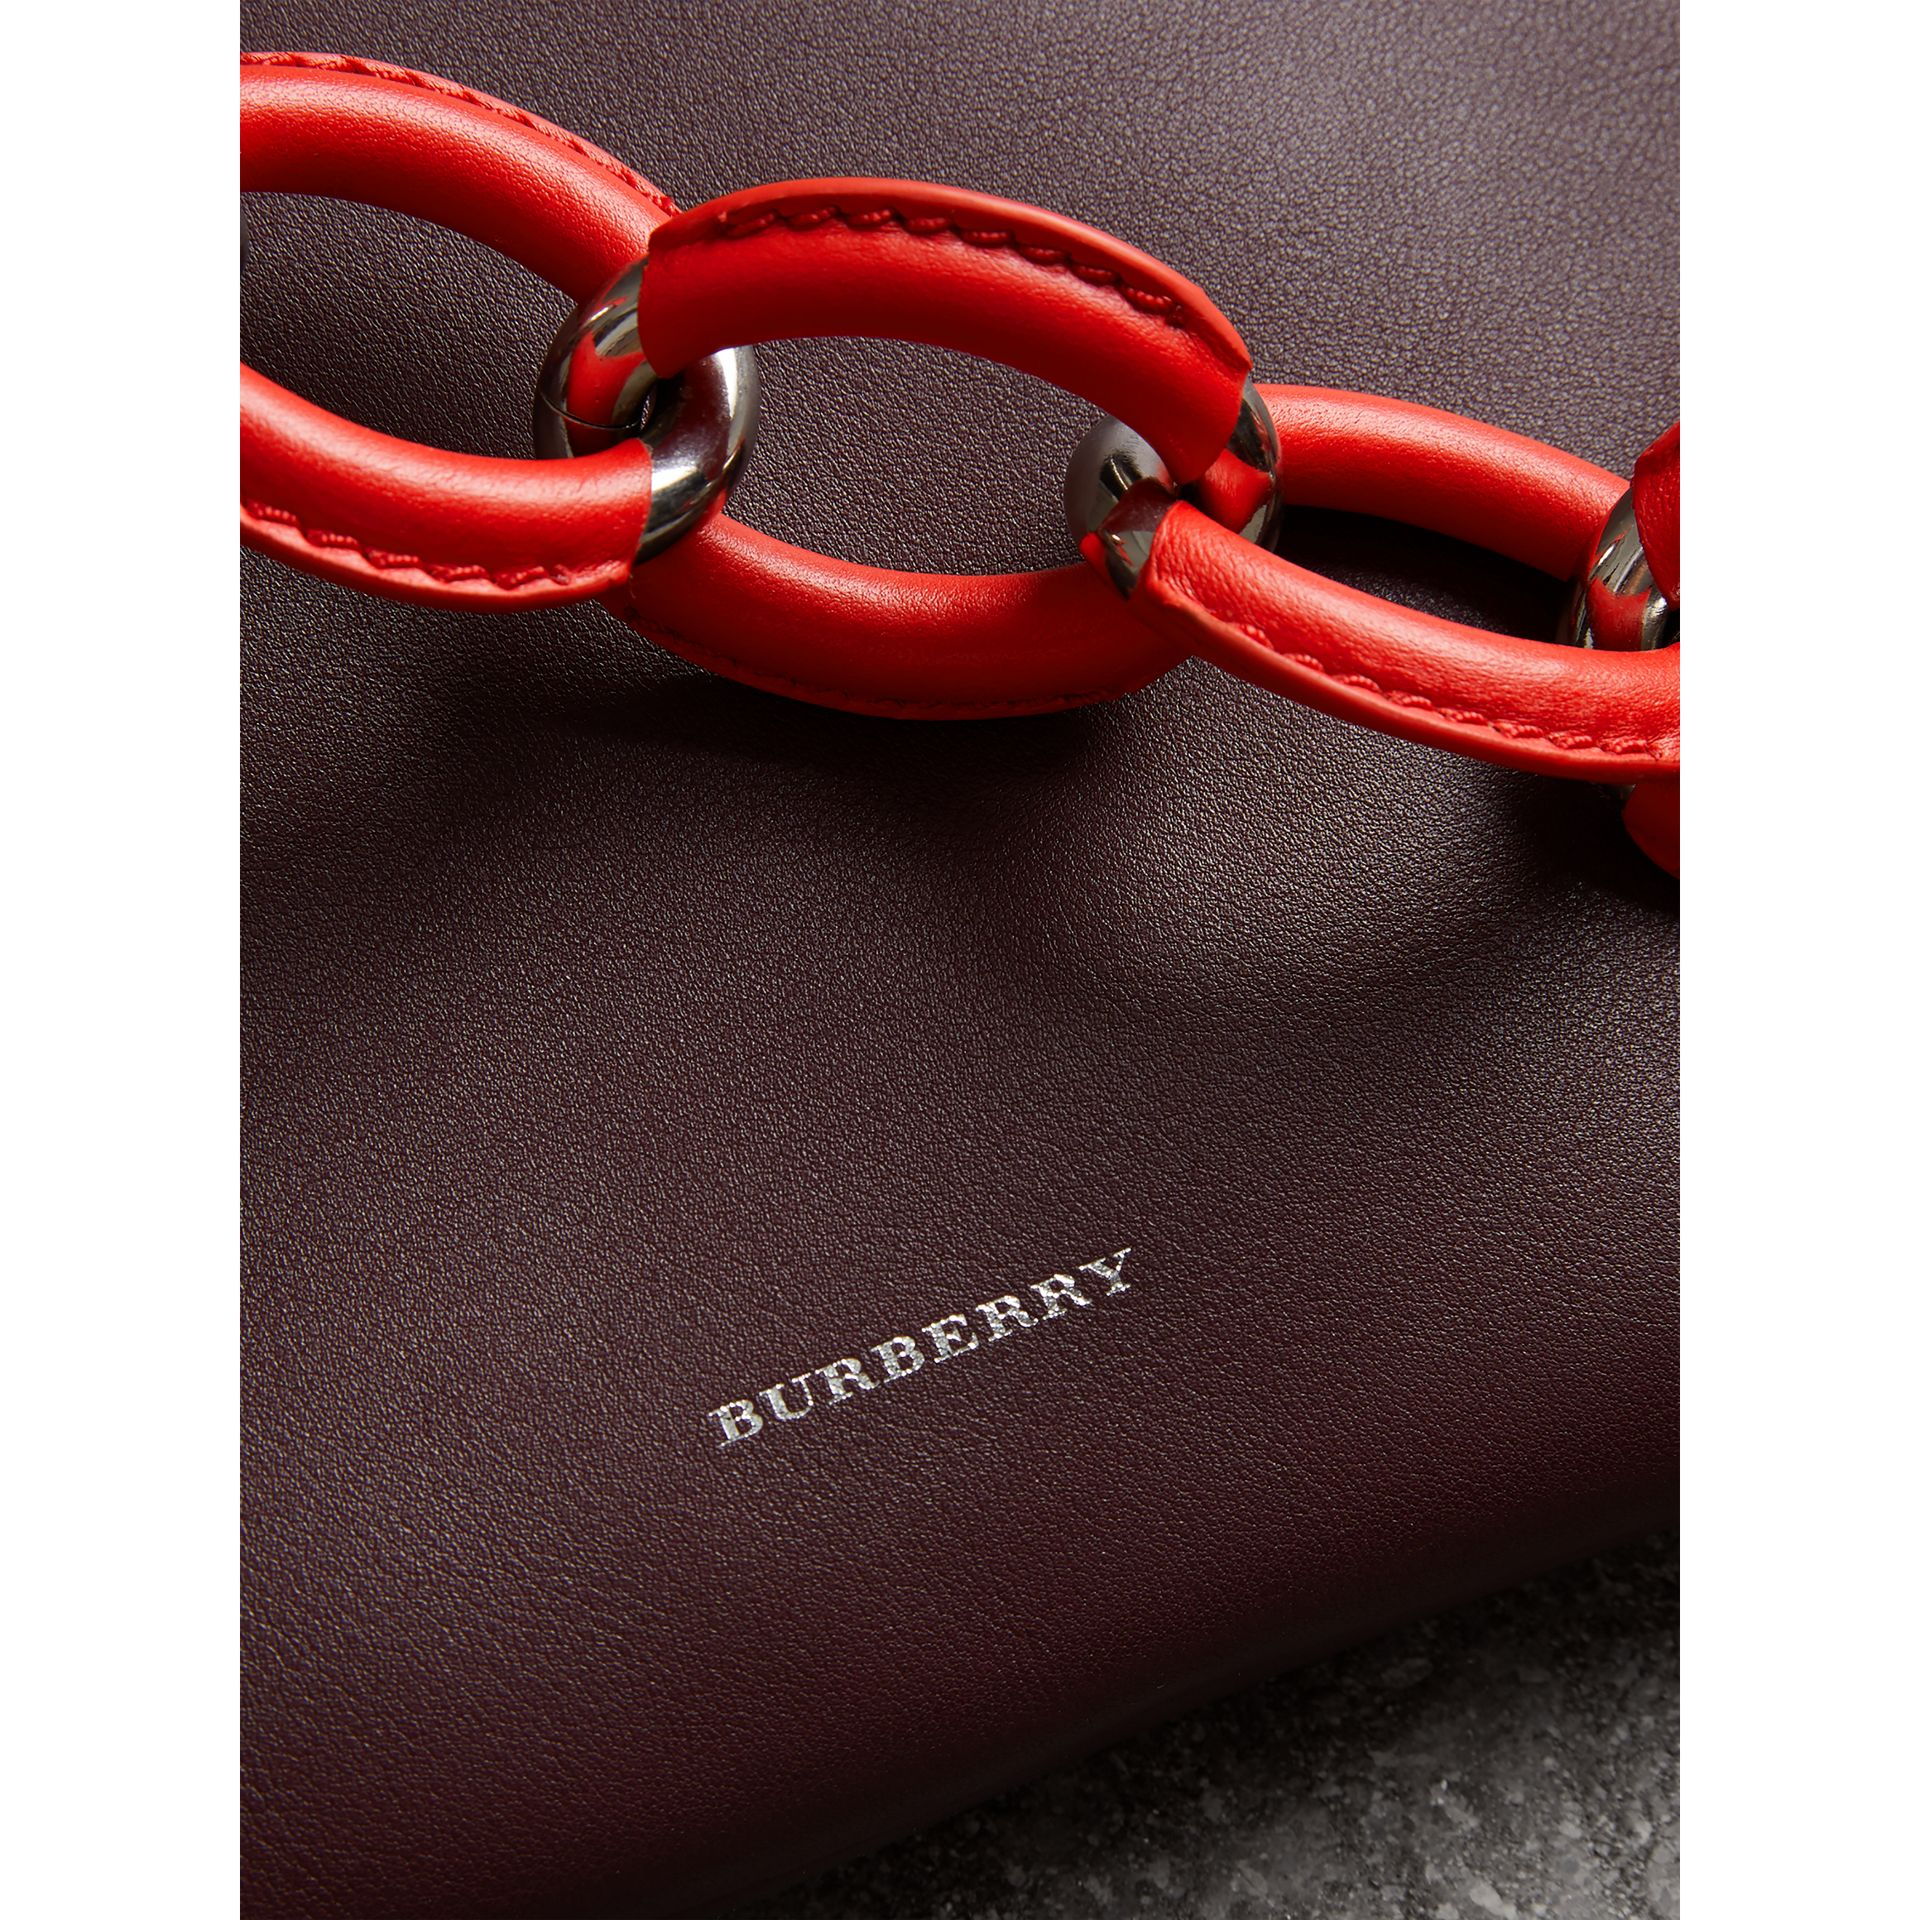 Medium Two-tone Leather Shopper in Deep Claret - Women | Burberry - gallery image 1